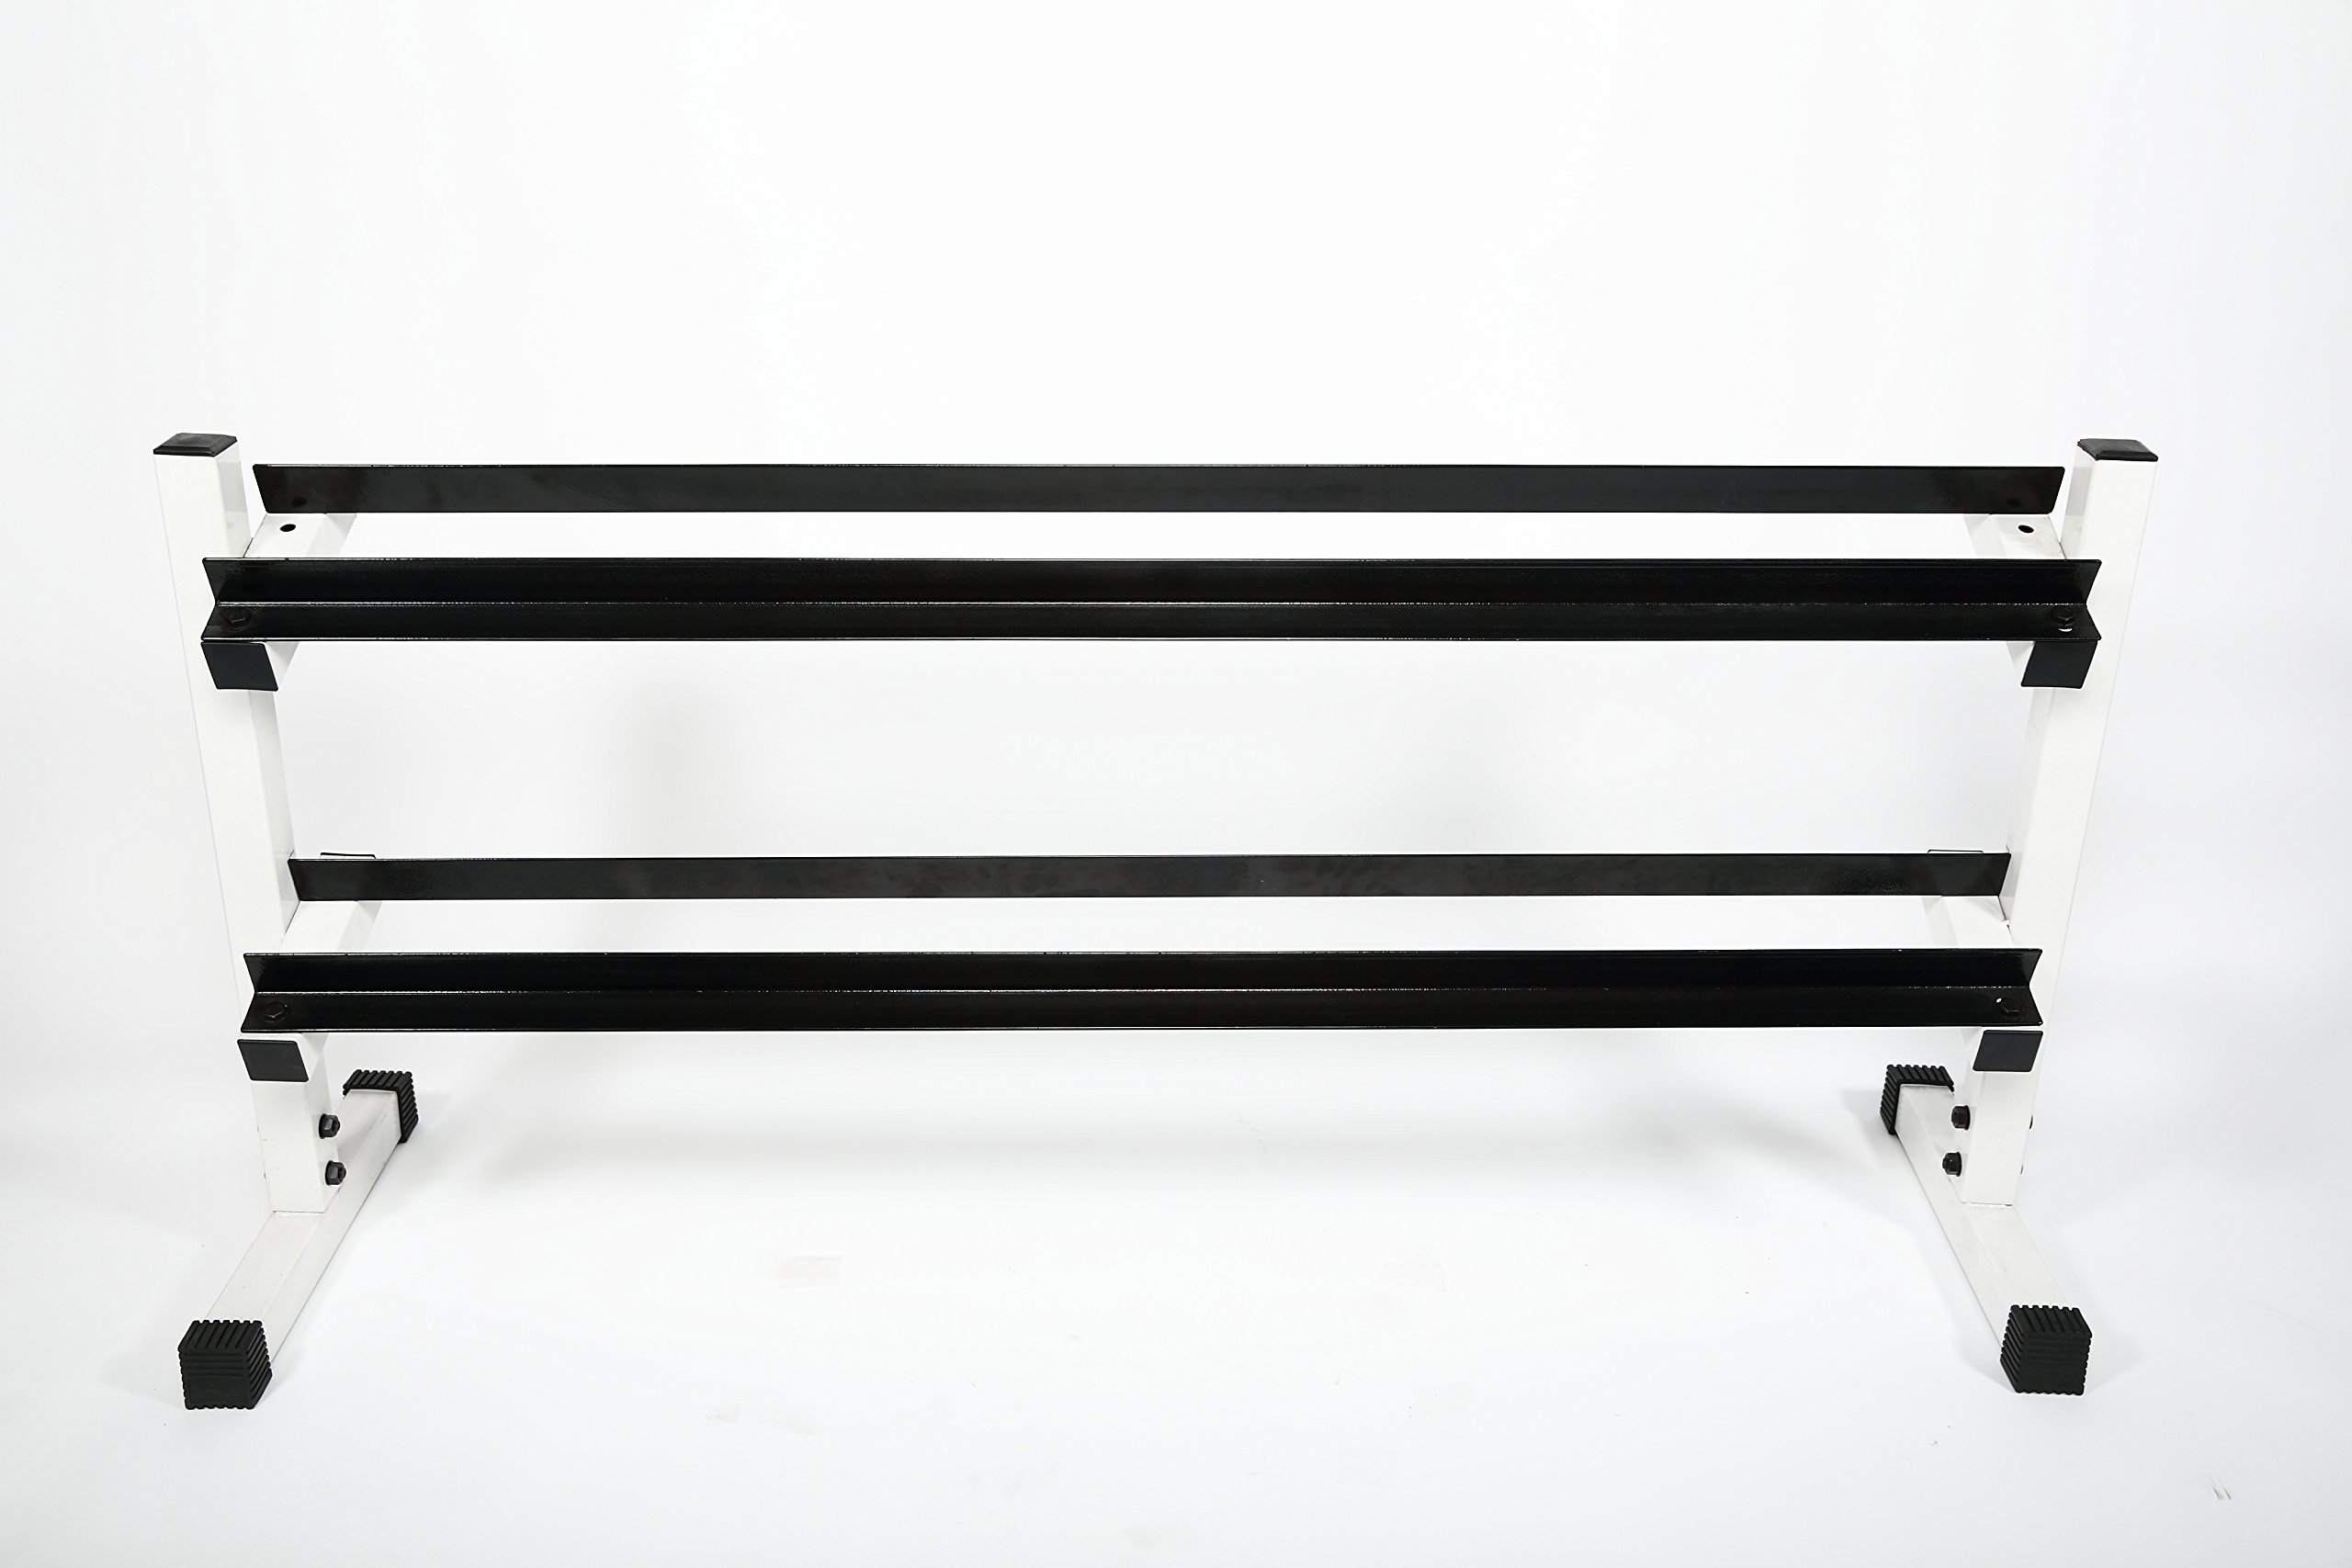 Ader Dumbbell Rack 2 Tier 54'' by Ader Sporting Goods